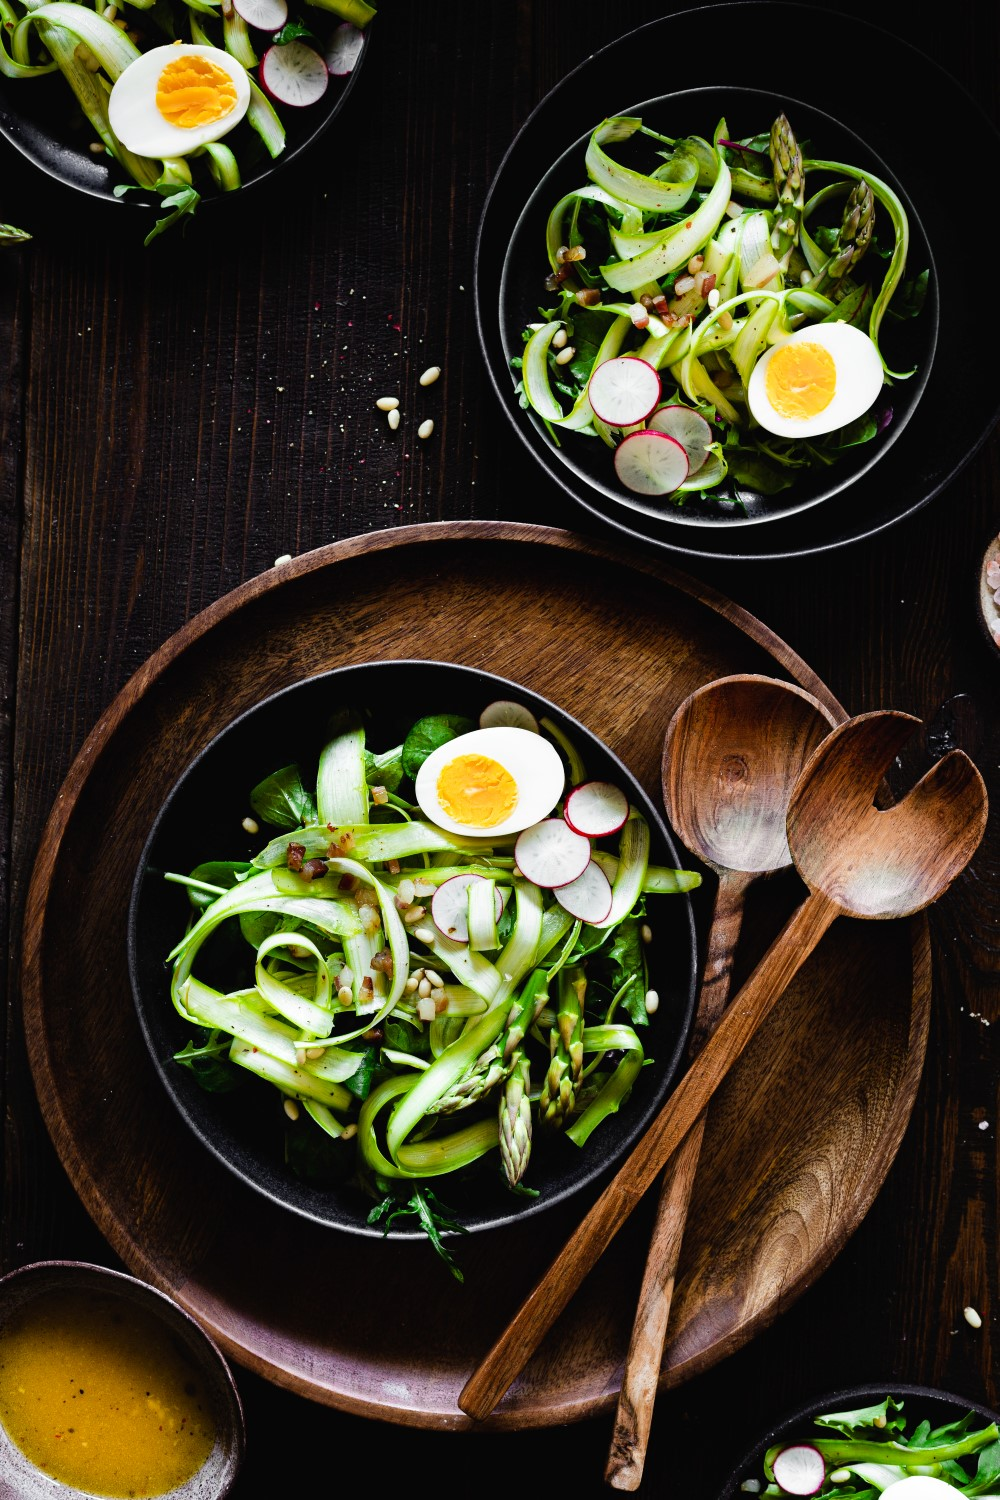 A refreshing salad like this shaved asparagus salad with a simple lemon vinaigrette is a healthy delicious early Spring treat!